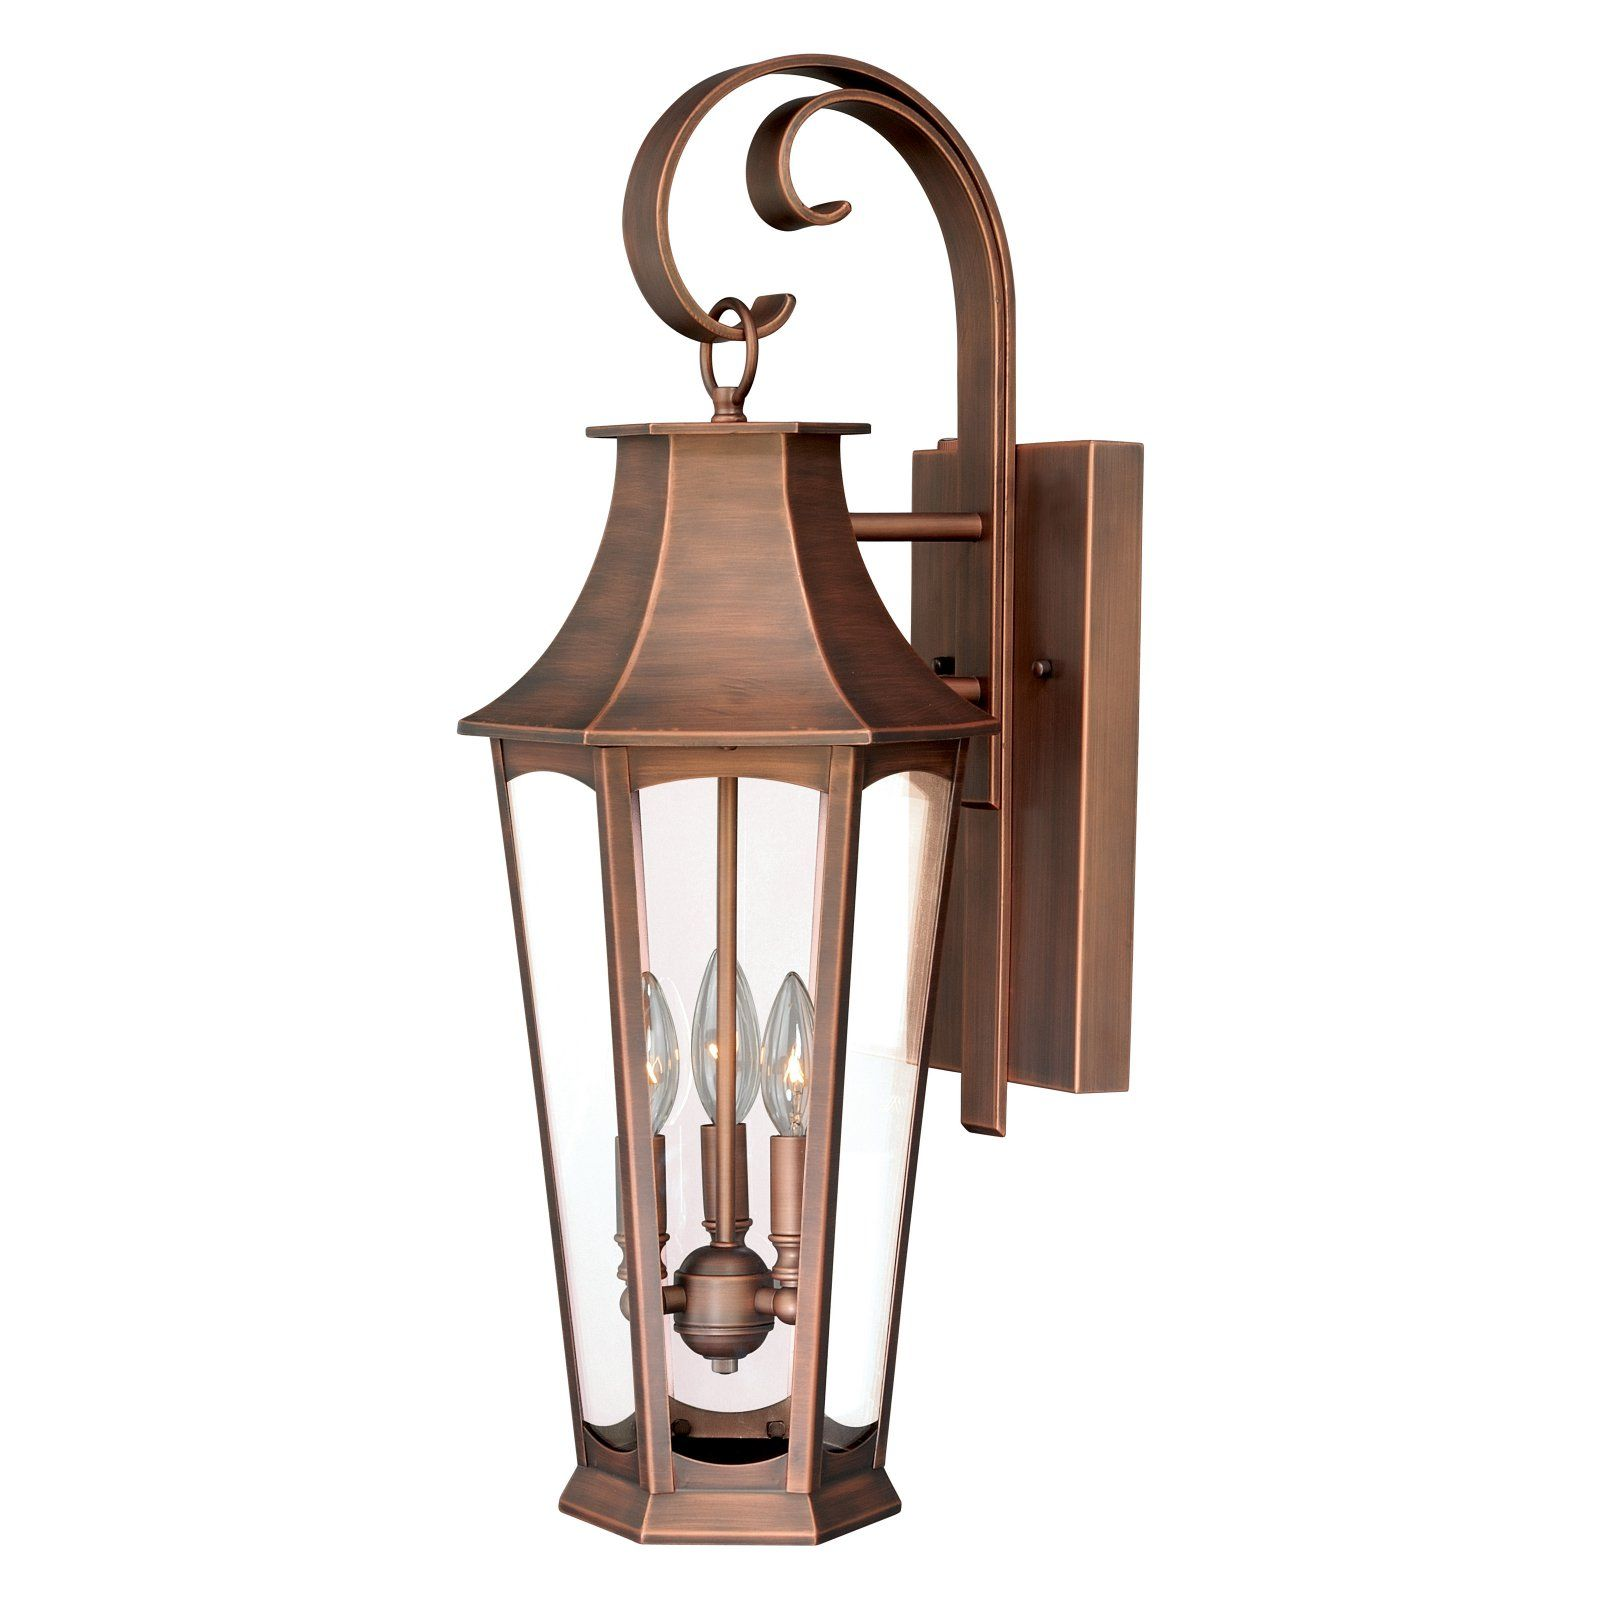 Vaxcel Preston T0120 T0117 Outdoor Wall Sconce Outdoor Wall Lantern Outdoor Wall Sconce Low Ceiling Lighting